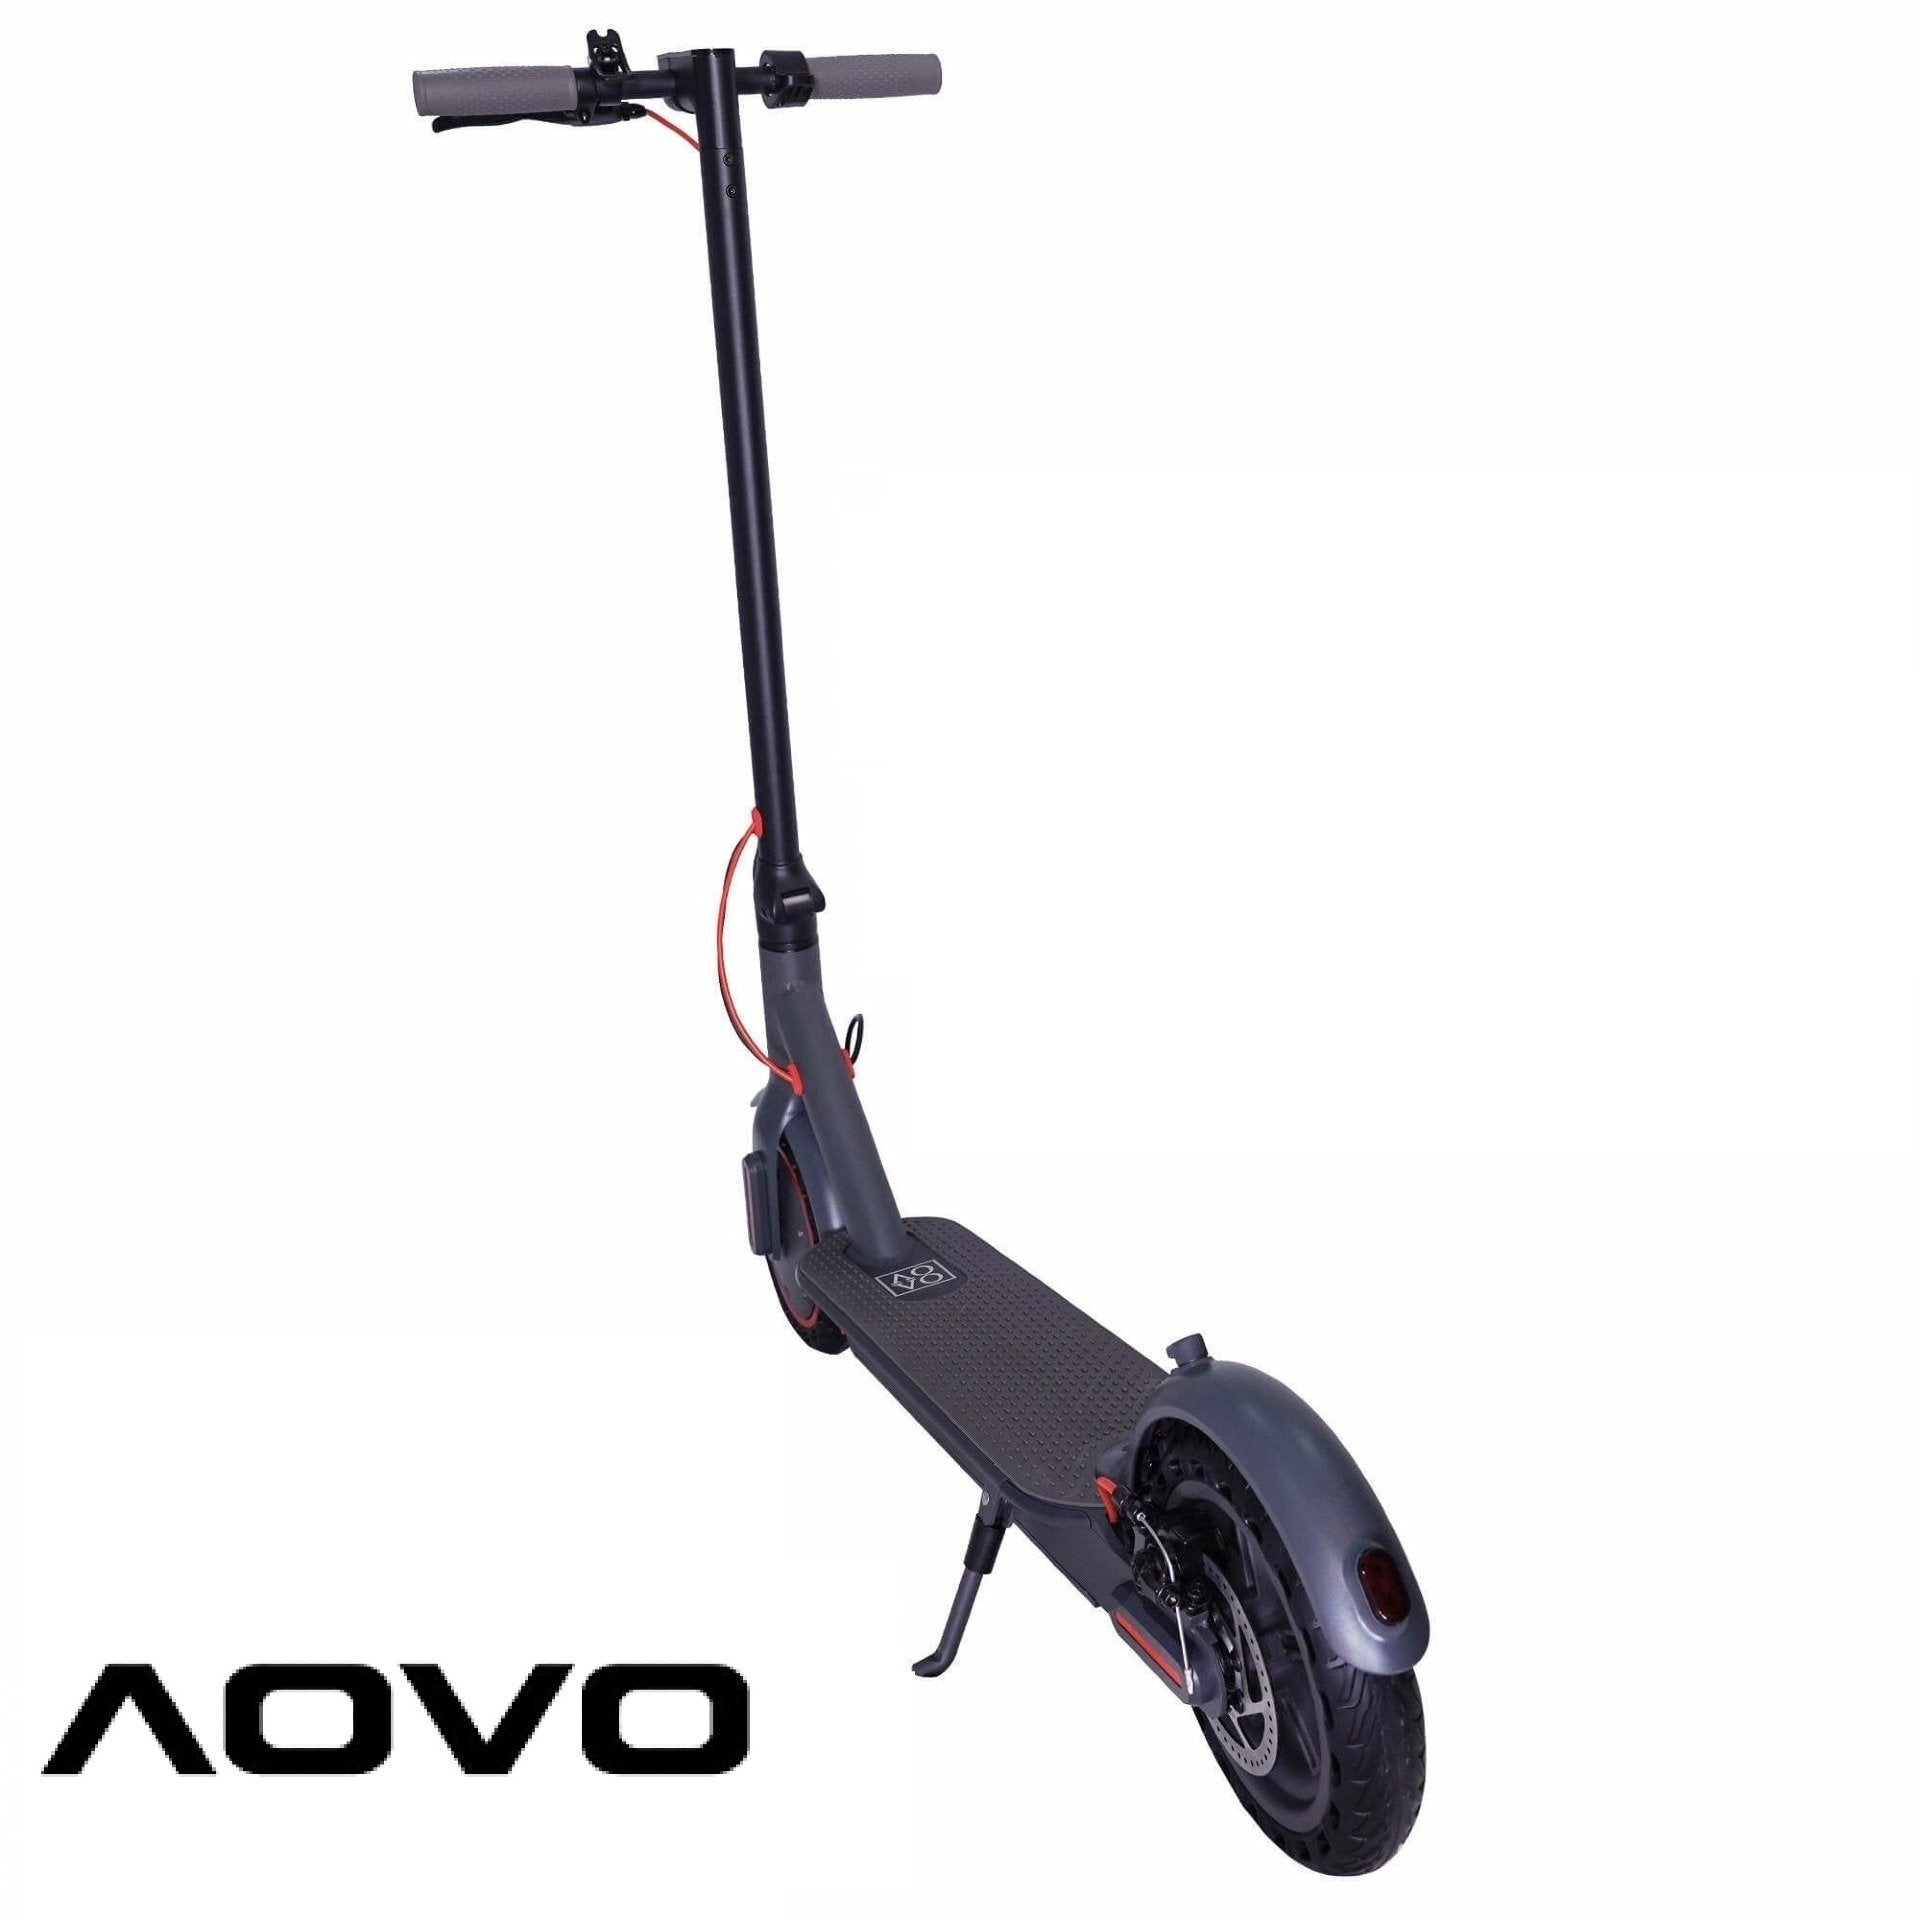 AOVO Pro Electric Scooter for sale